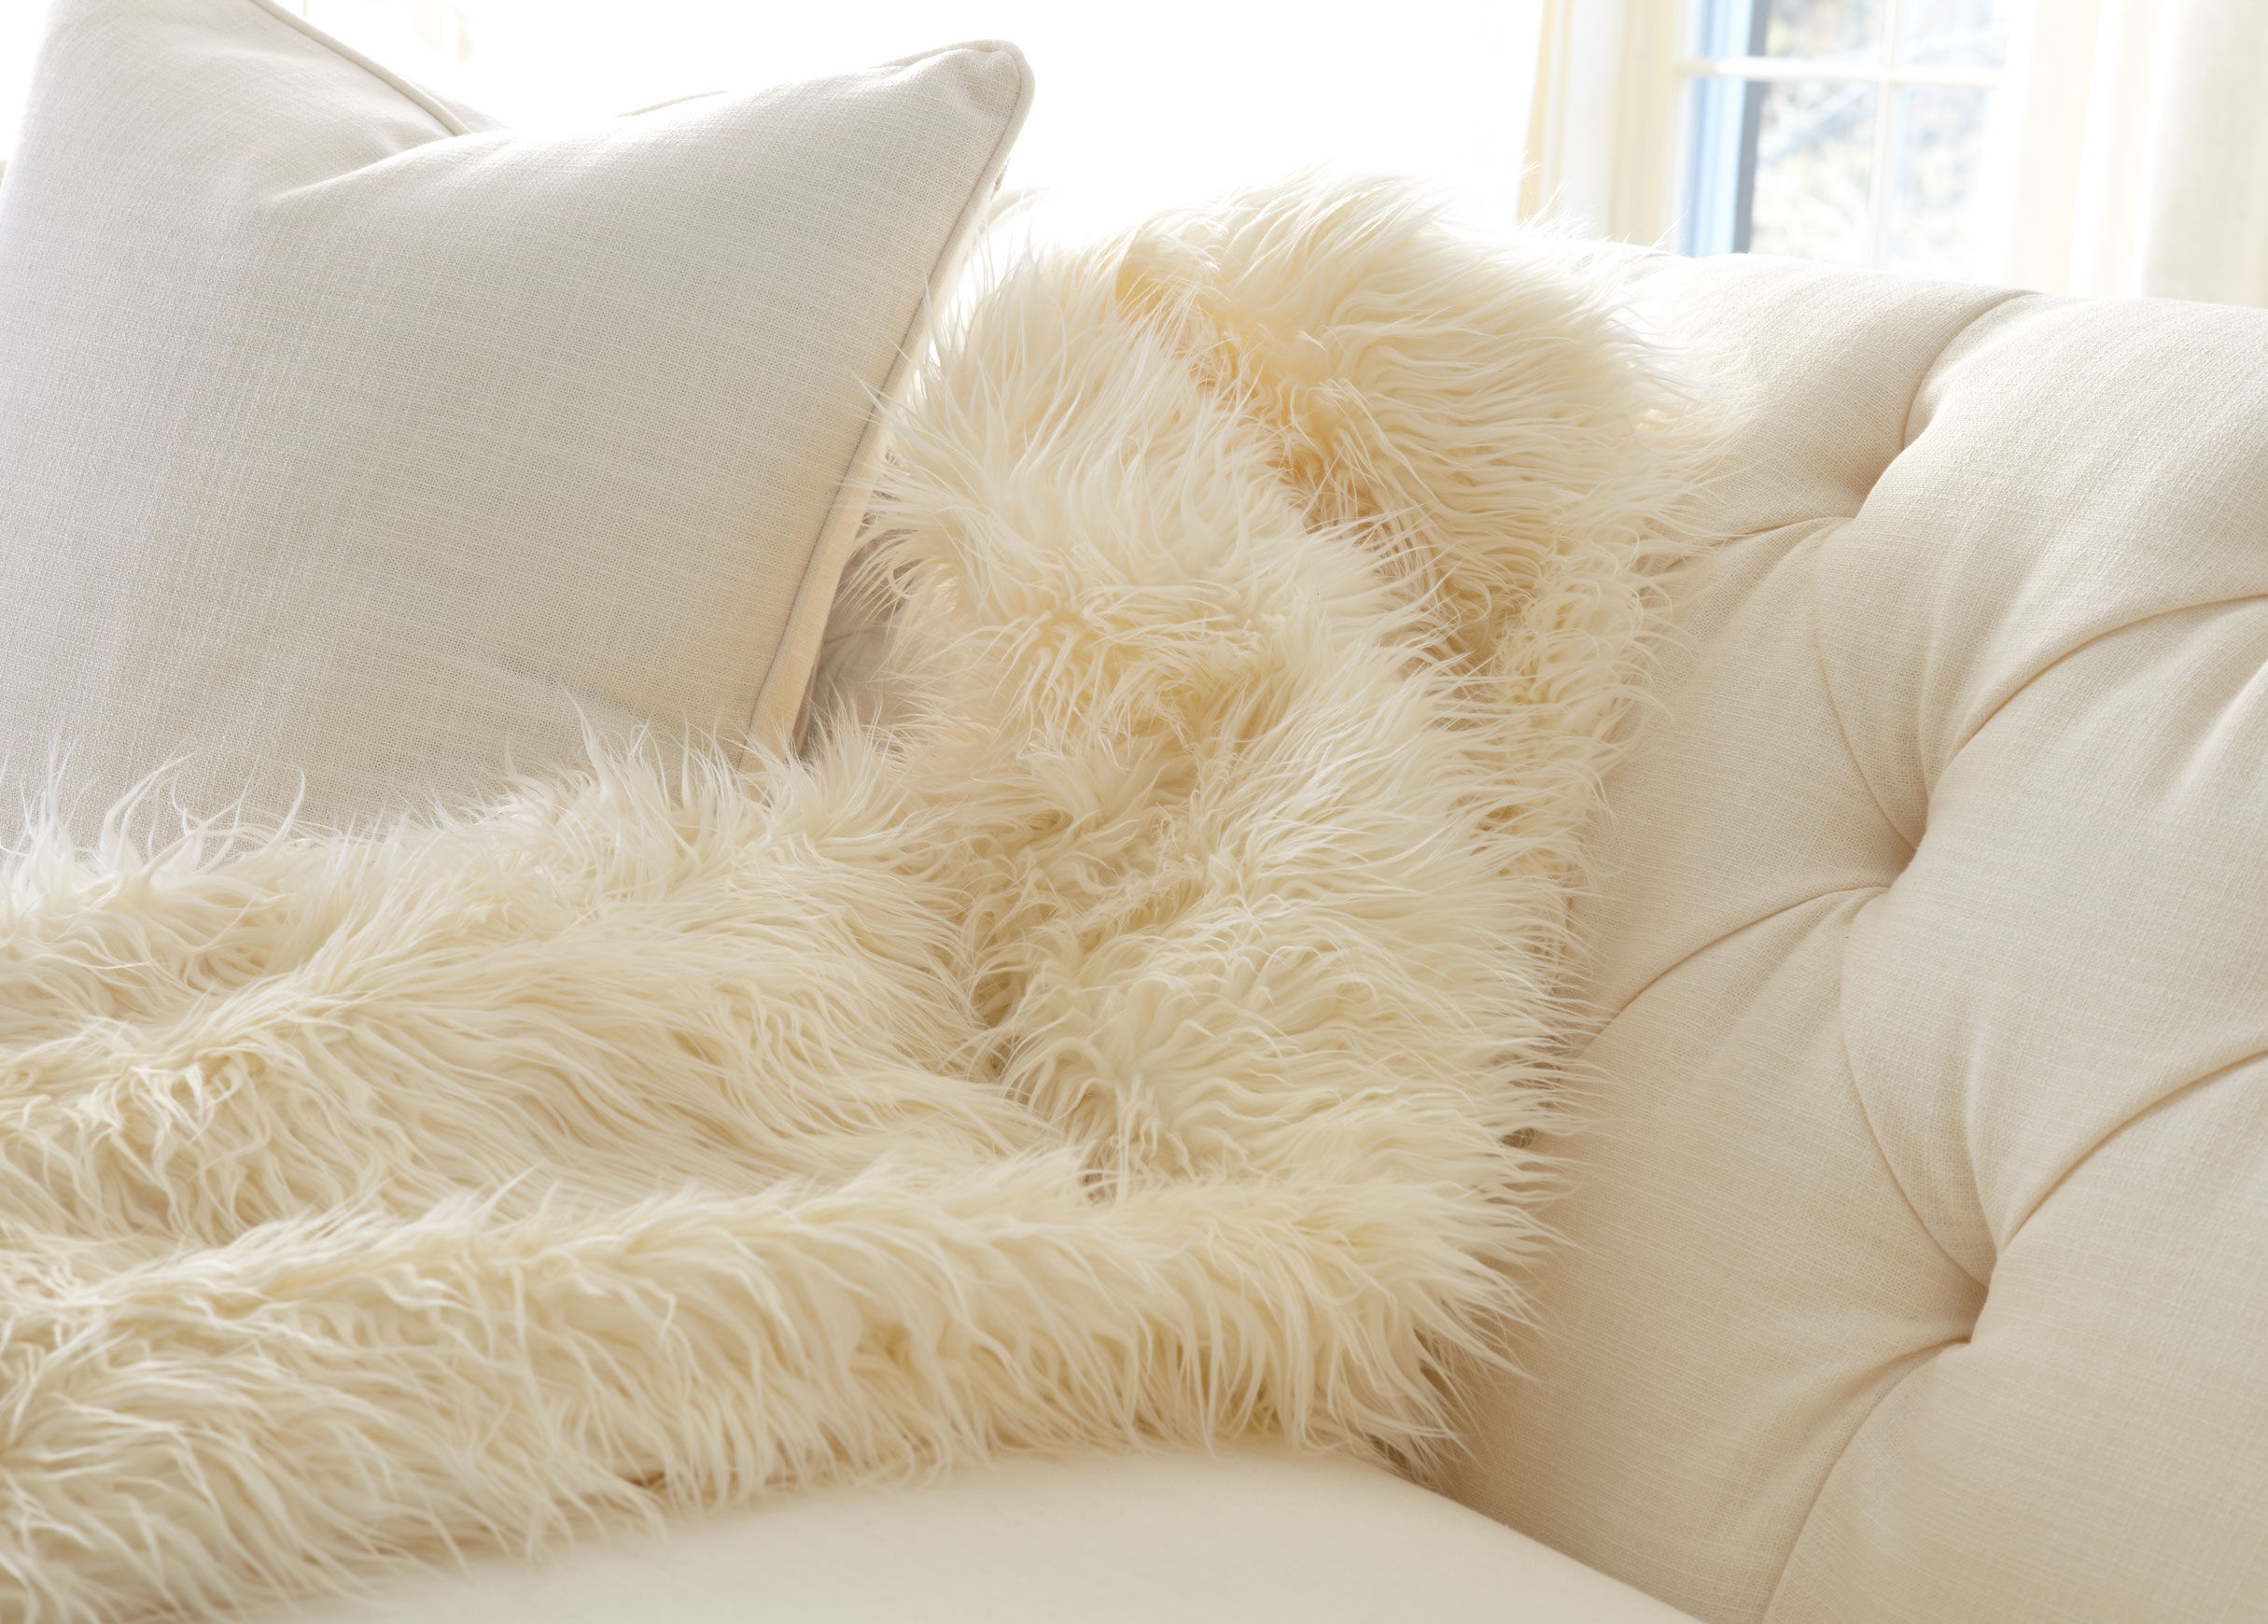 homes details better top brands white about itm leopard snow faux pillow and fur p gardens throw